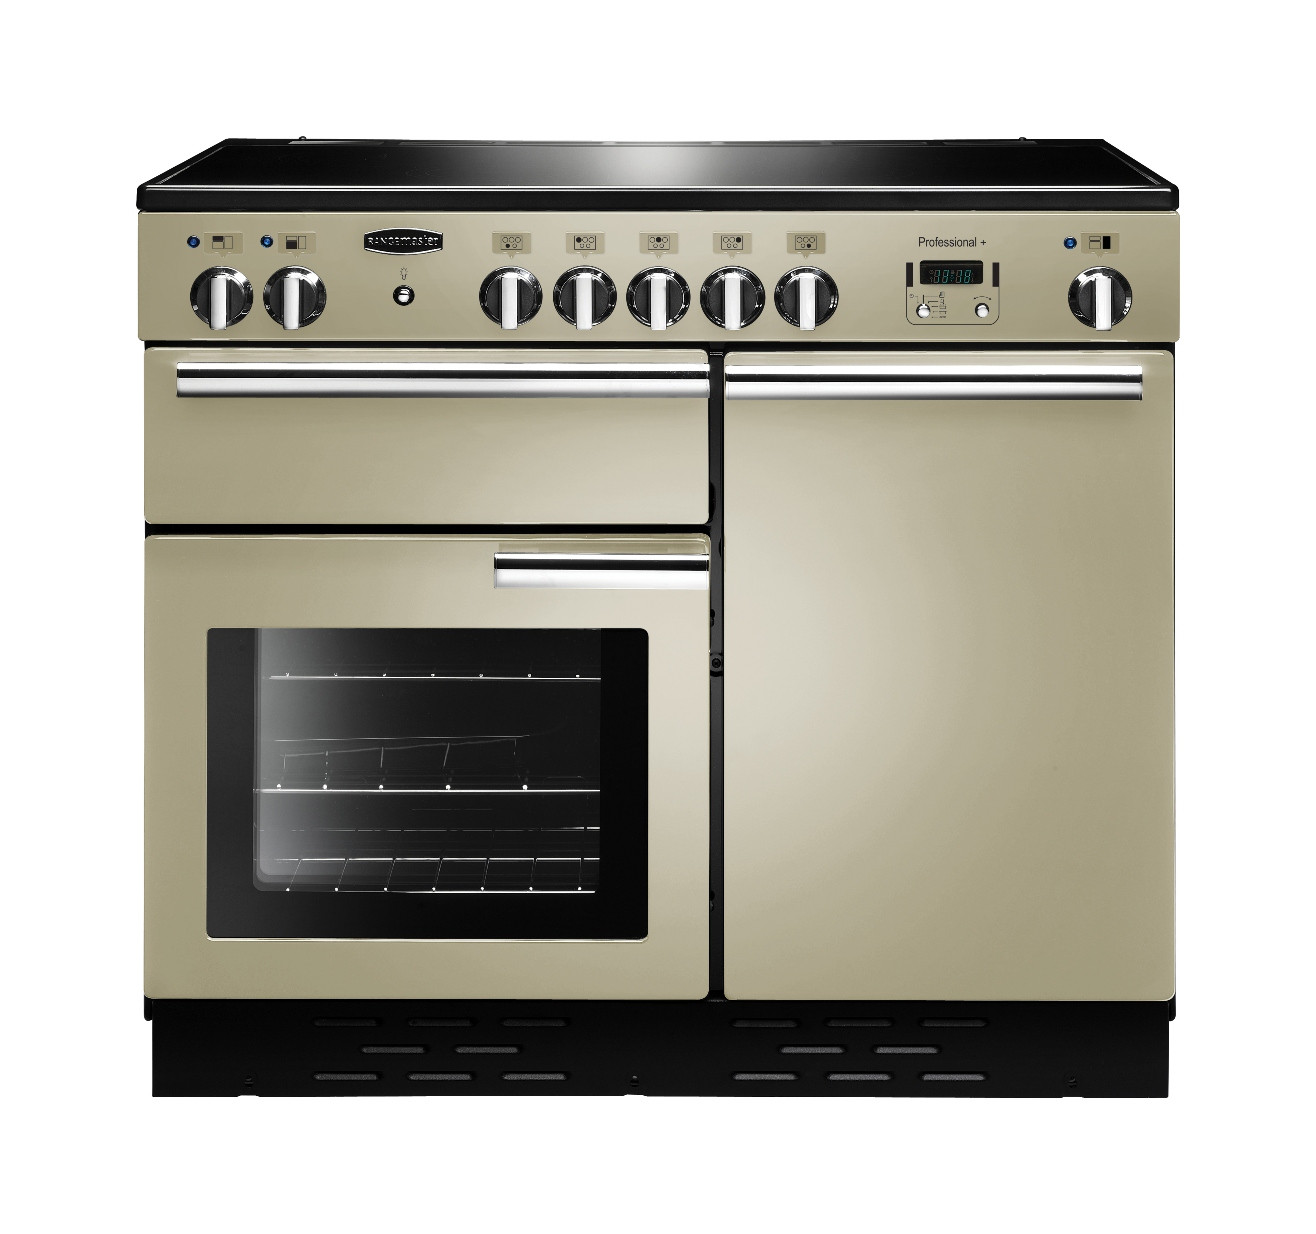 Rangemaster Professional Plus 100 Induction Cream Range Cooker PROP100EICR/C 96040